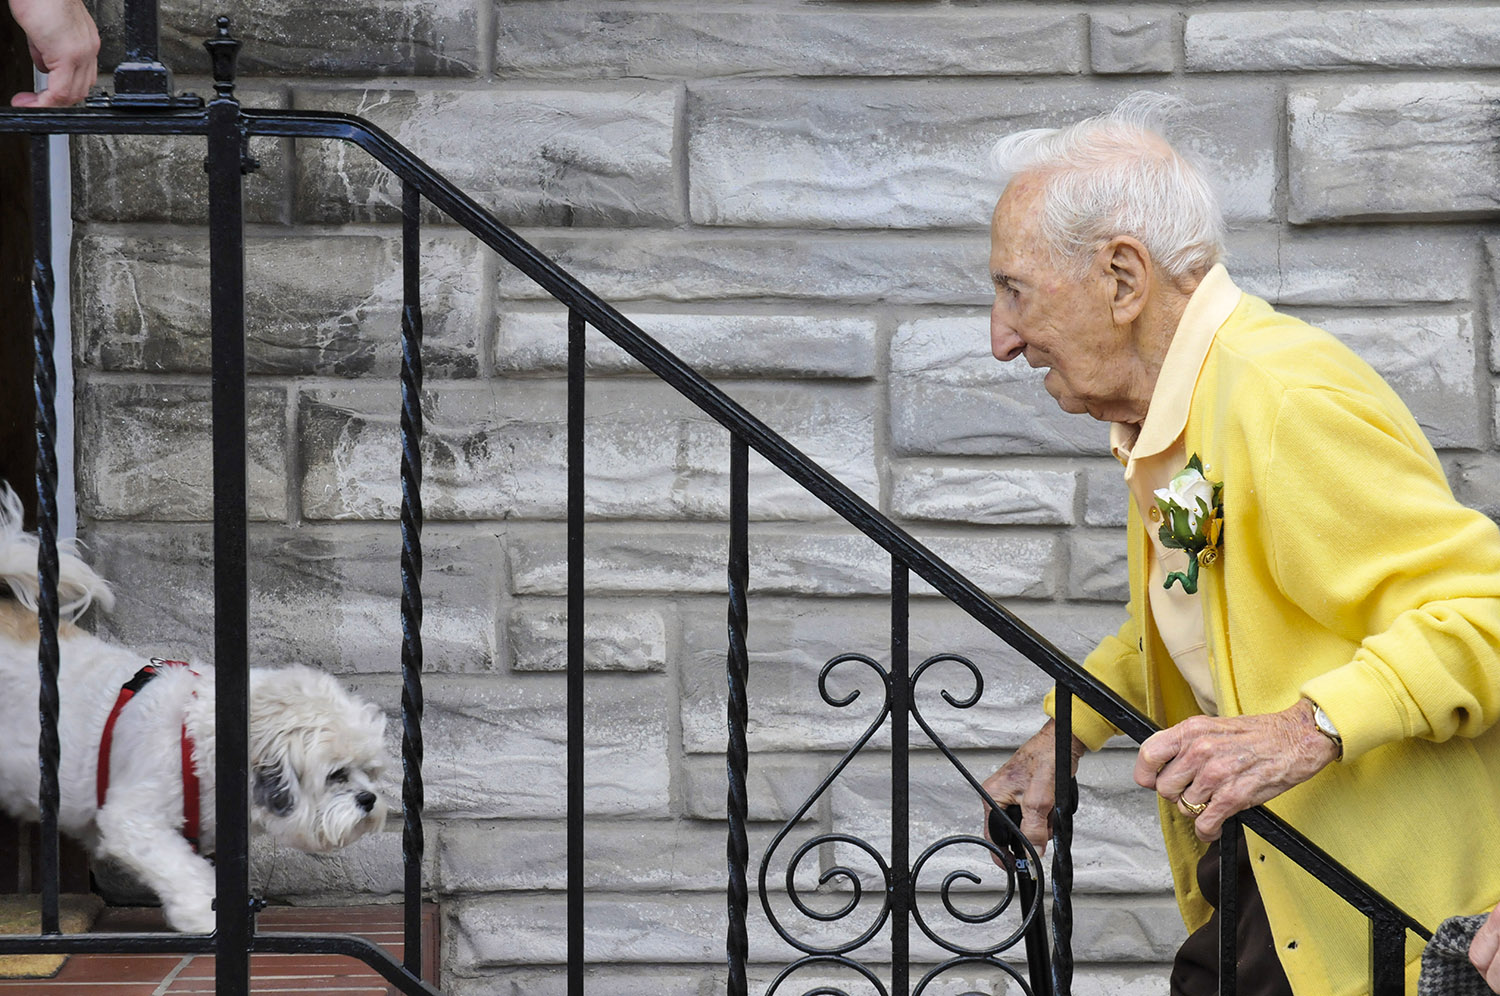 John Pente, Home After His 100th Birthday Party